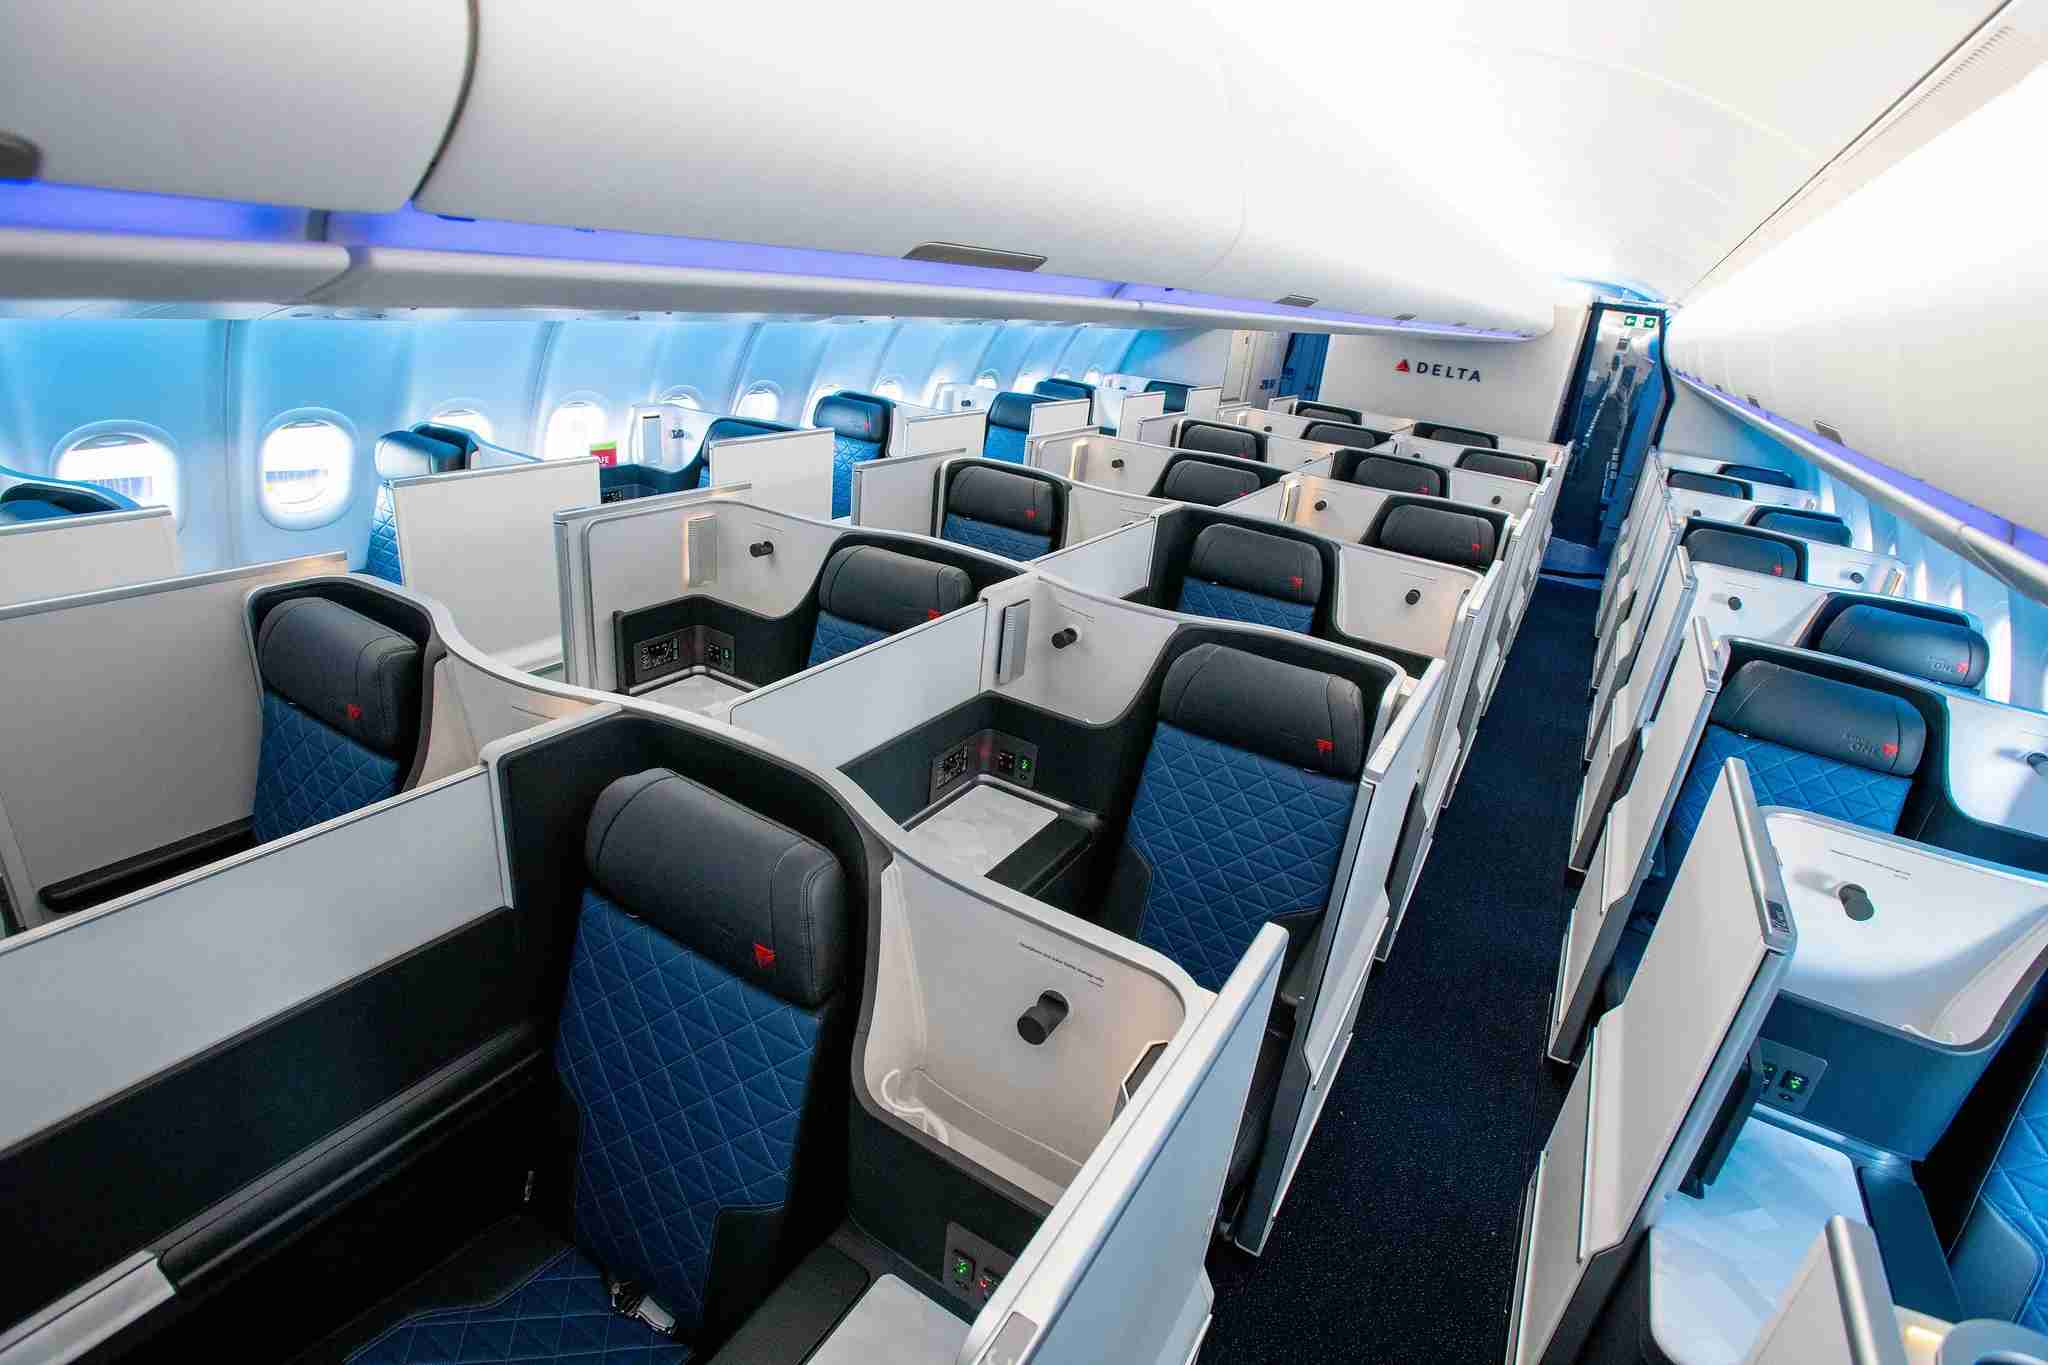 delta-one-cabin-a339-airbus-a330-900neo